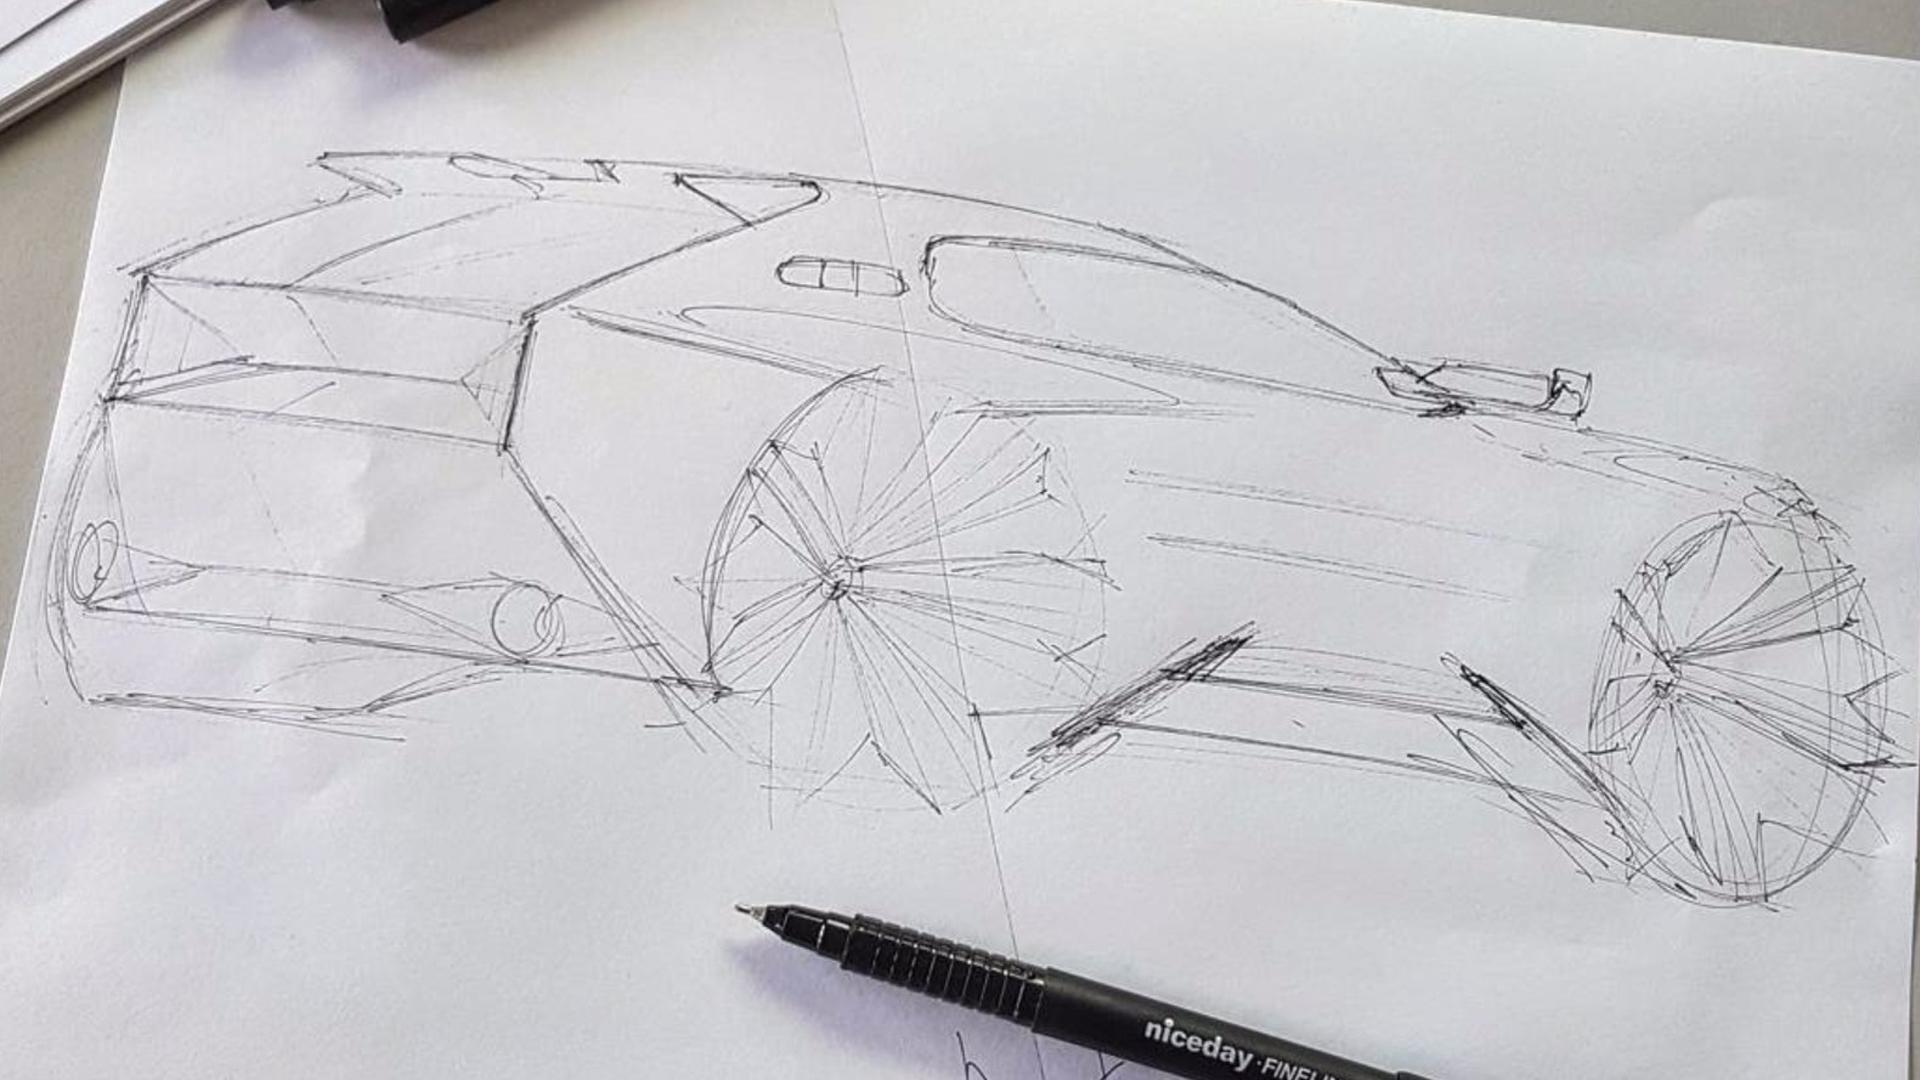 Peugeot 205 GTI Sketches (7)